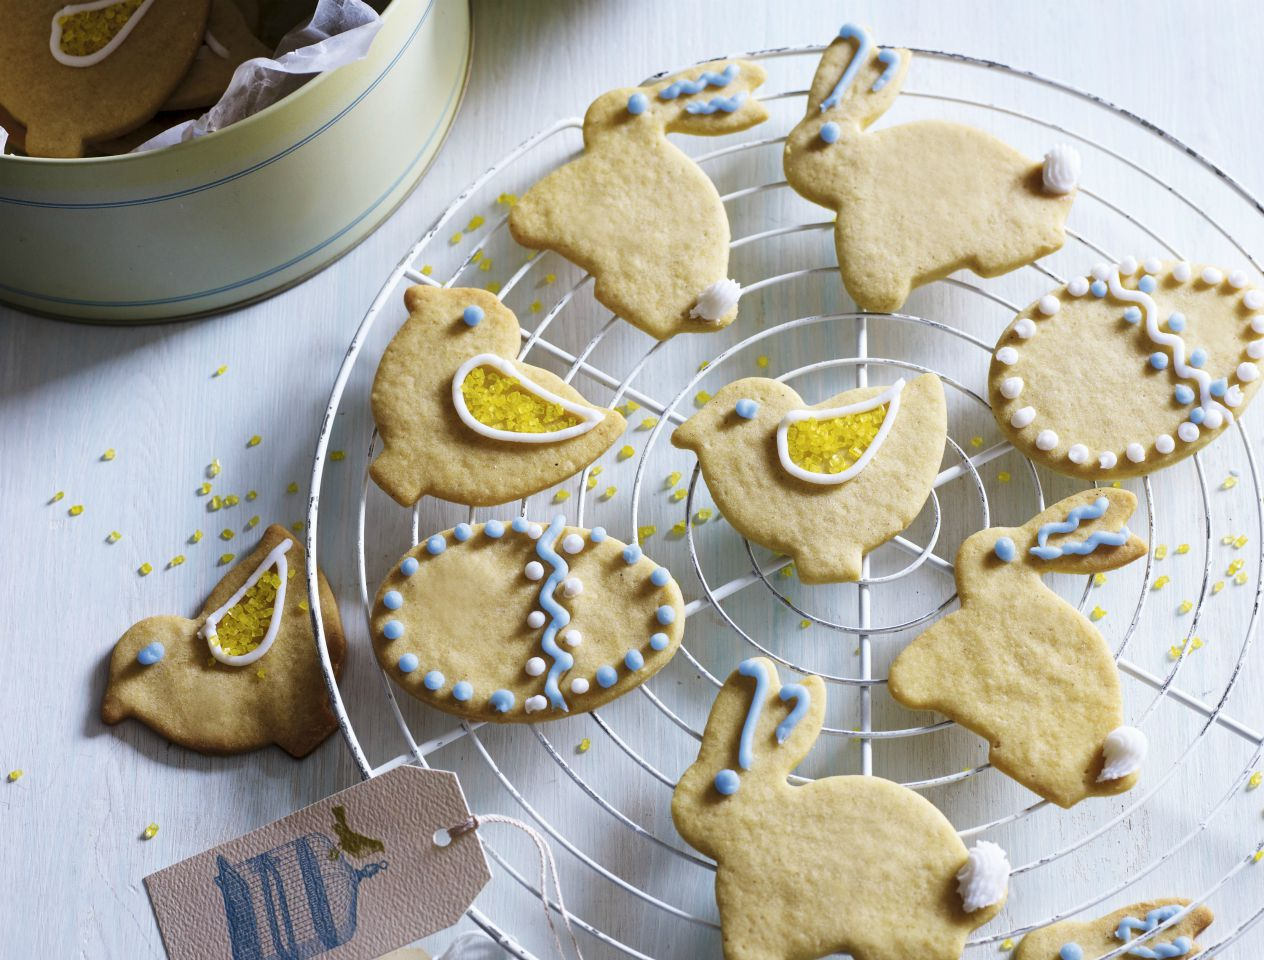 Delicious-looking bunny biscuits on a cooling tray